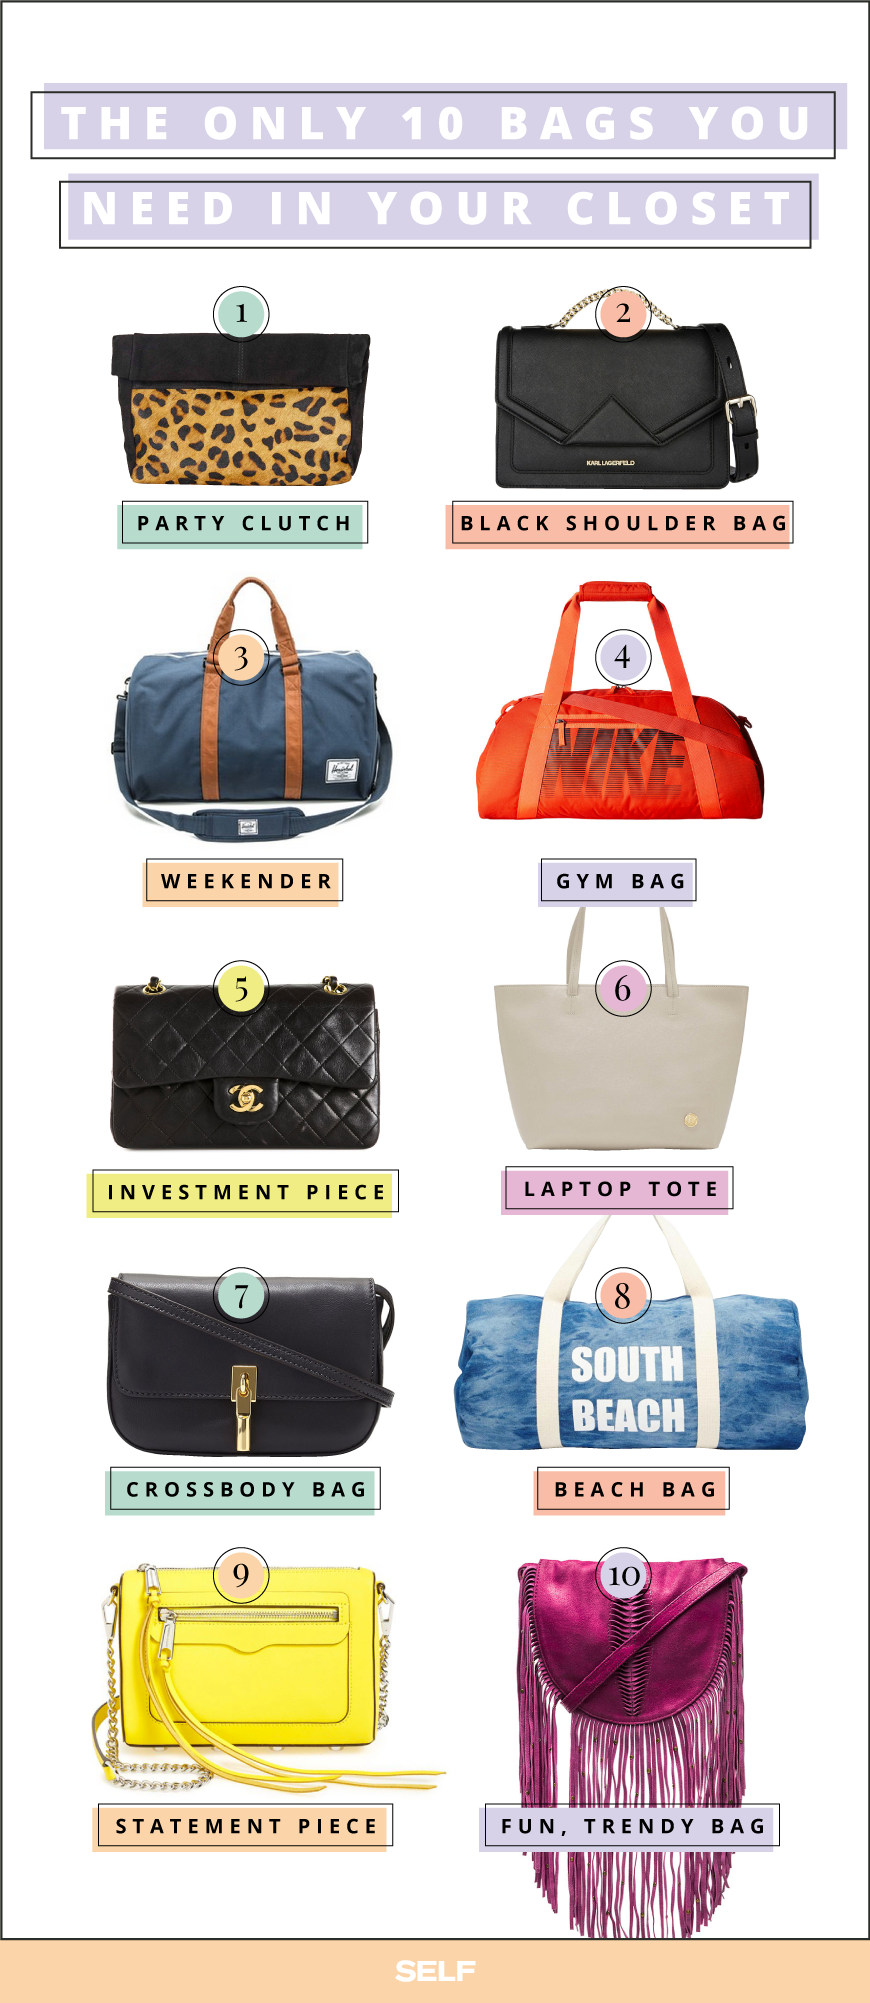 the only 10 bags you'll ever need